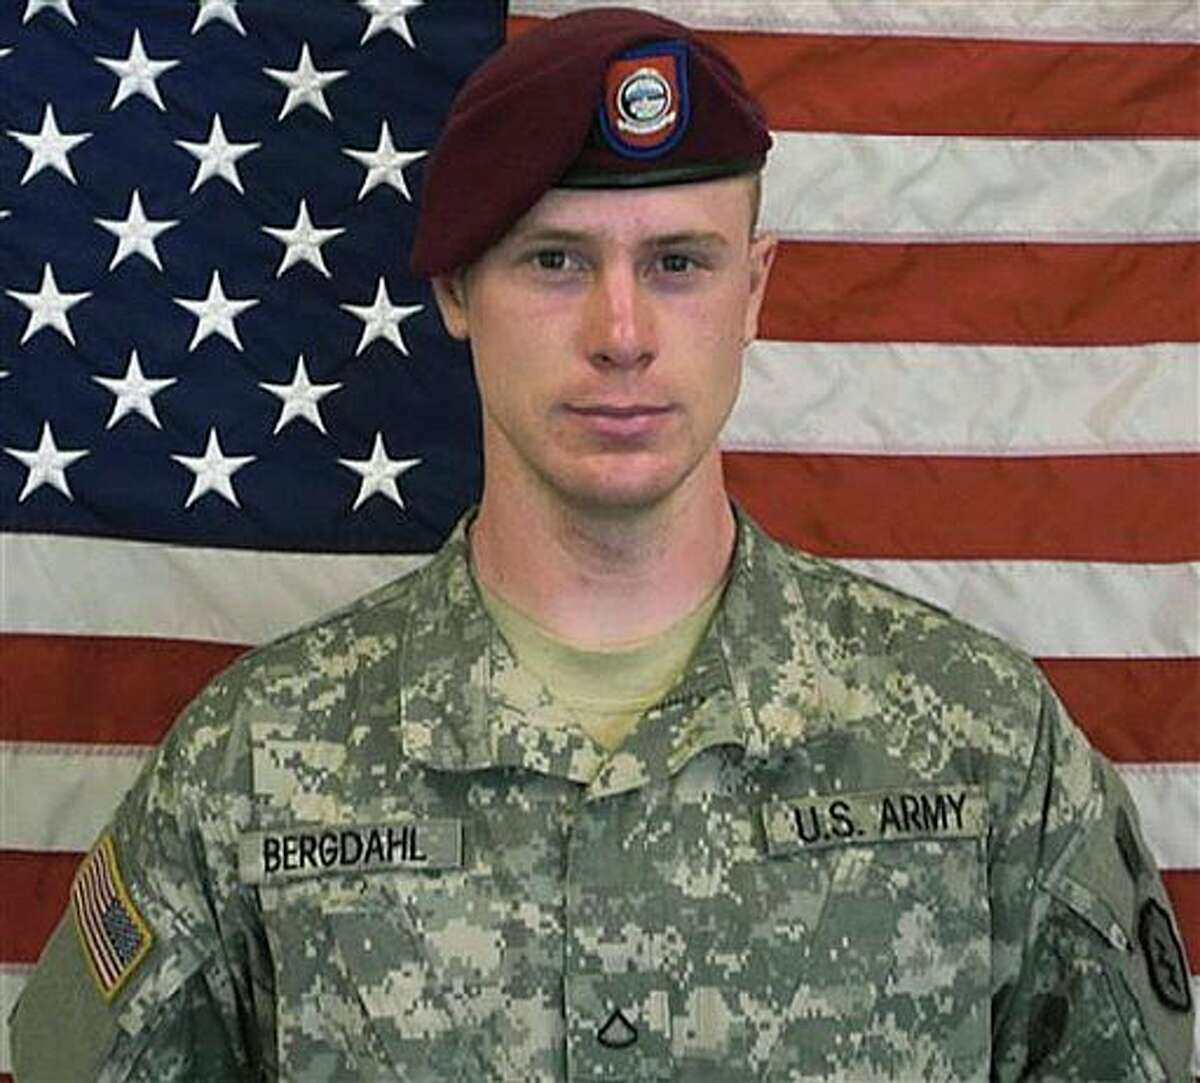 FILE - This undated file image provided by the U.S. Army shows Sgt. Bowe Bergdahl. A Pentagon investigation concluded in 2010 that Bergdahl walked away from his unit, and after an initial flurry of searching, the military decided not to exert extraordinary efforts to rescue him, according to a former senior defense official who was involved in the matter. Instead, the U.S. government pursued negotiations to get him back over the following five years of his captivity - a track that led to his release over the weekend. (AP Photo/U.S. Army, File)